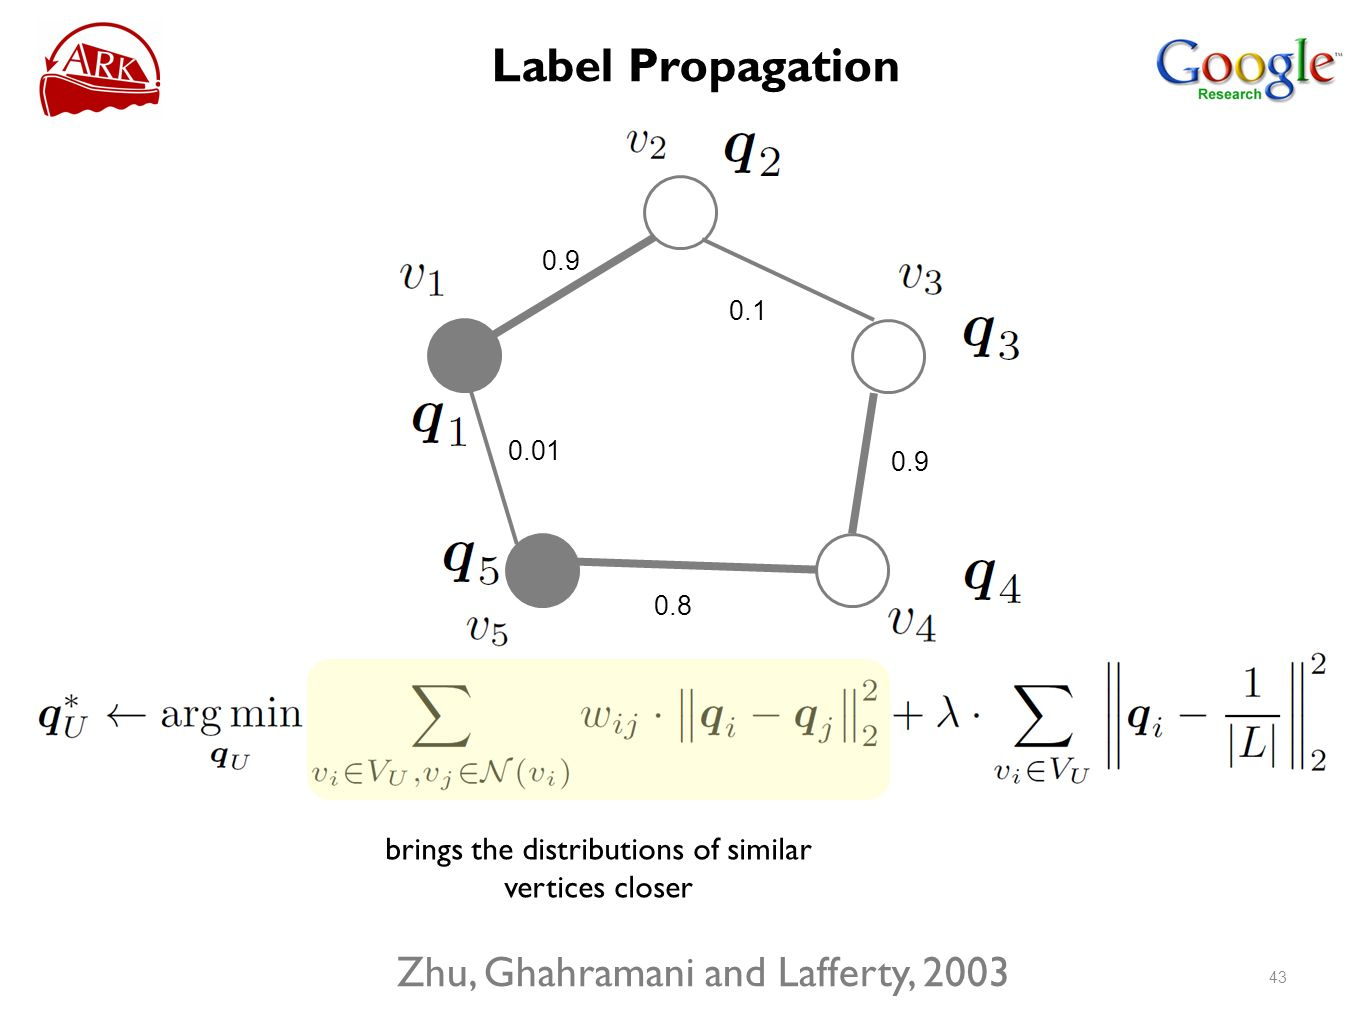 0.9 0.01 0.8 0.9 0.1 brings the distributions of similar vertices closer Zhu, Ghahramani and Lafferty, 2003 43 Label Propagation